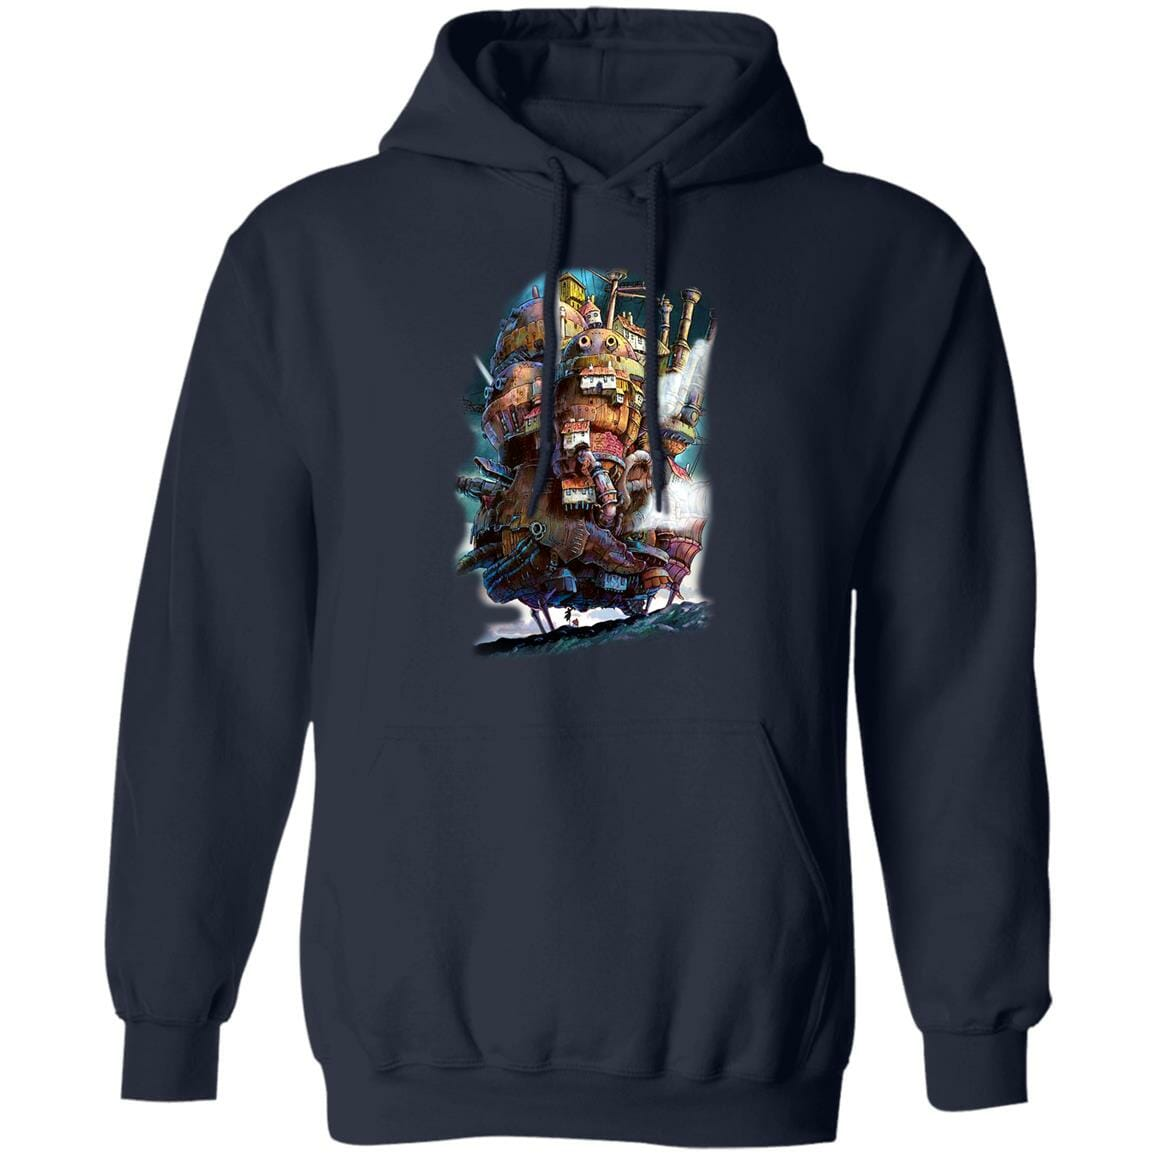 Howl's Moving Caslte on the Sky Hoodie